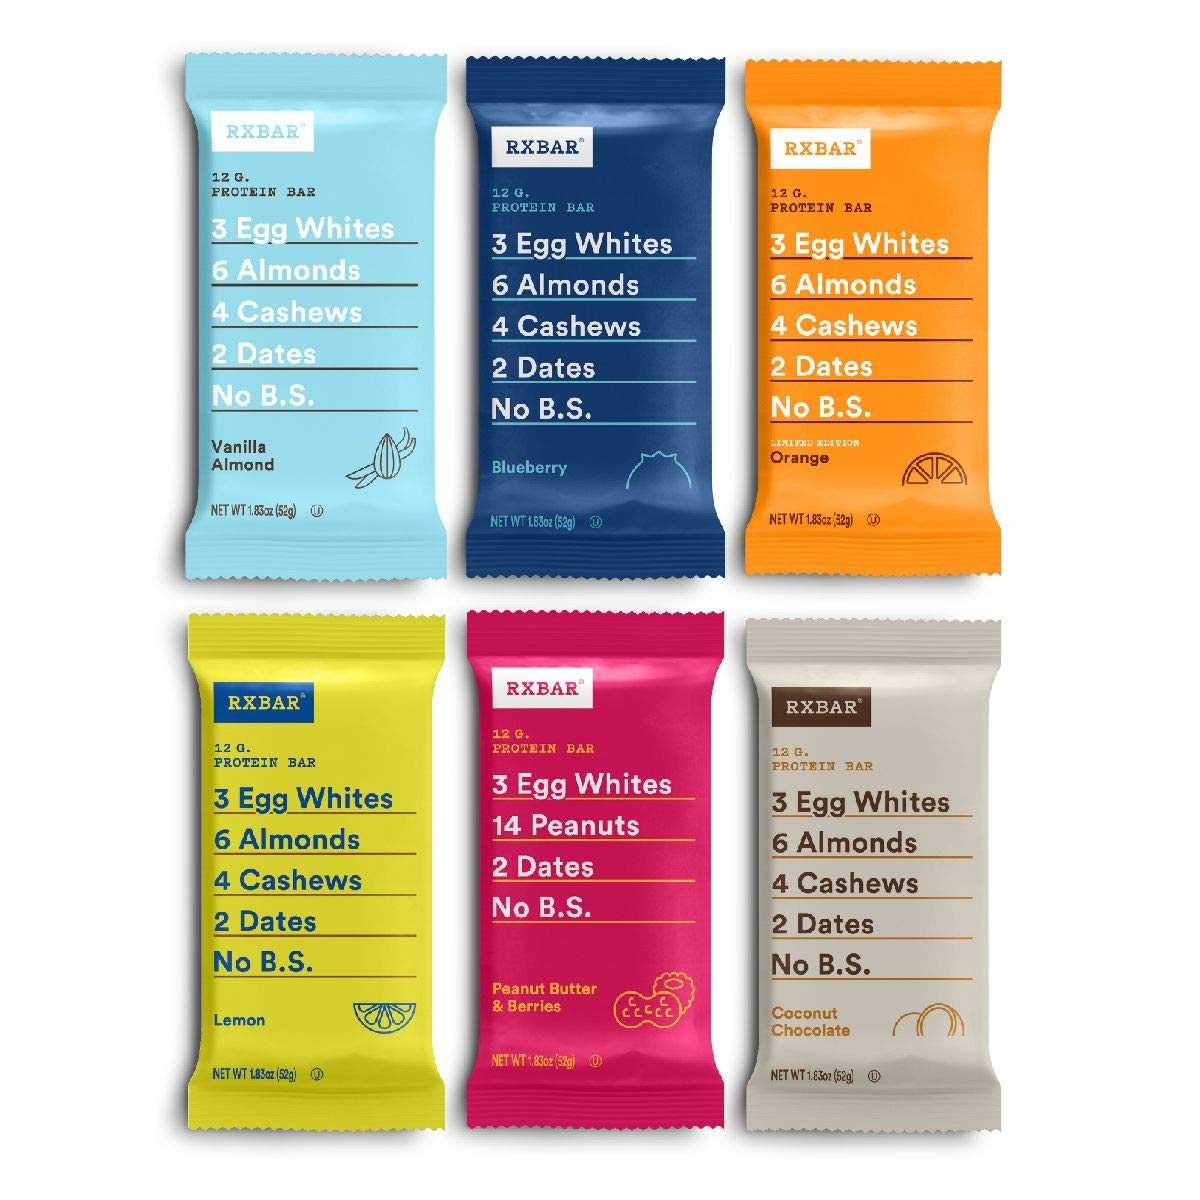 RXBAR Protein bar Max 63% OFF Summer Variety 1.83 12ct Pack Oz Sales of SALE items from new works